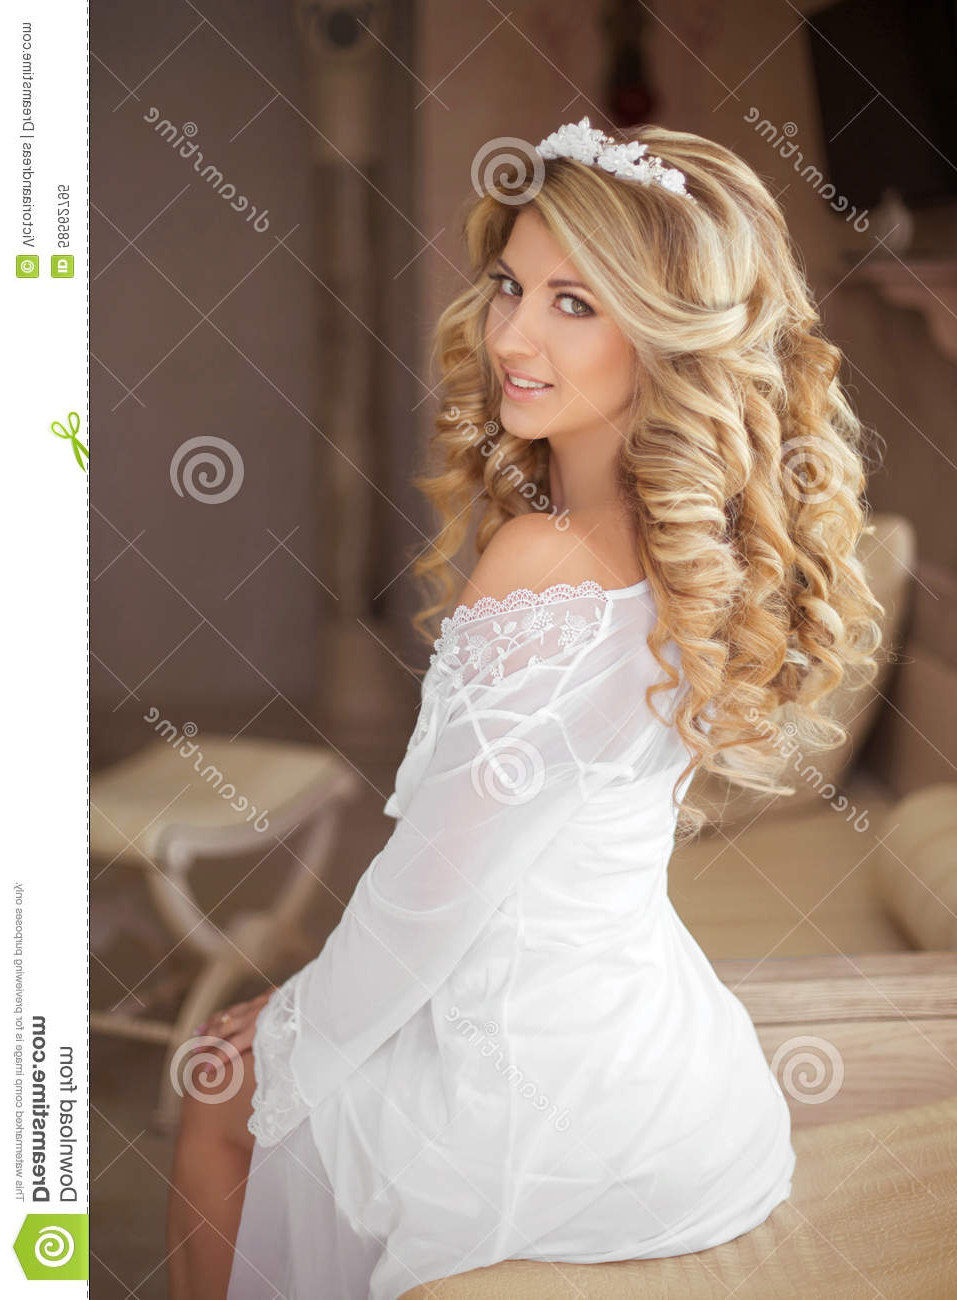 Latest Pile Of Curls Hairstyles For Wedding With Healthy Hair. Beautiful Smiling Girl Bride With Long Blonde Curl (Gallery 16 of 20)